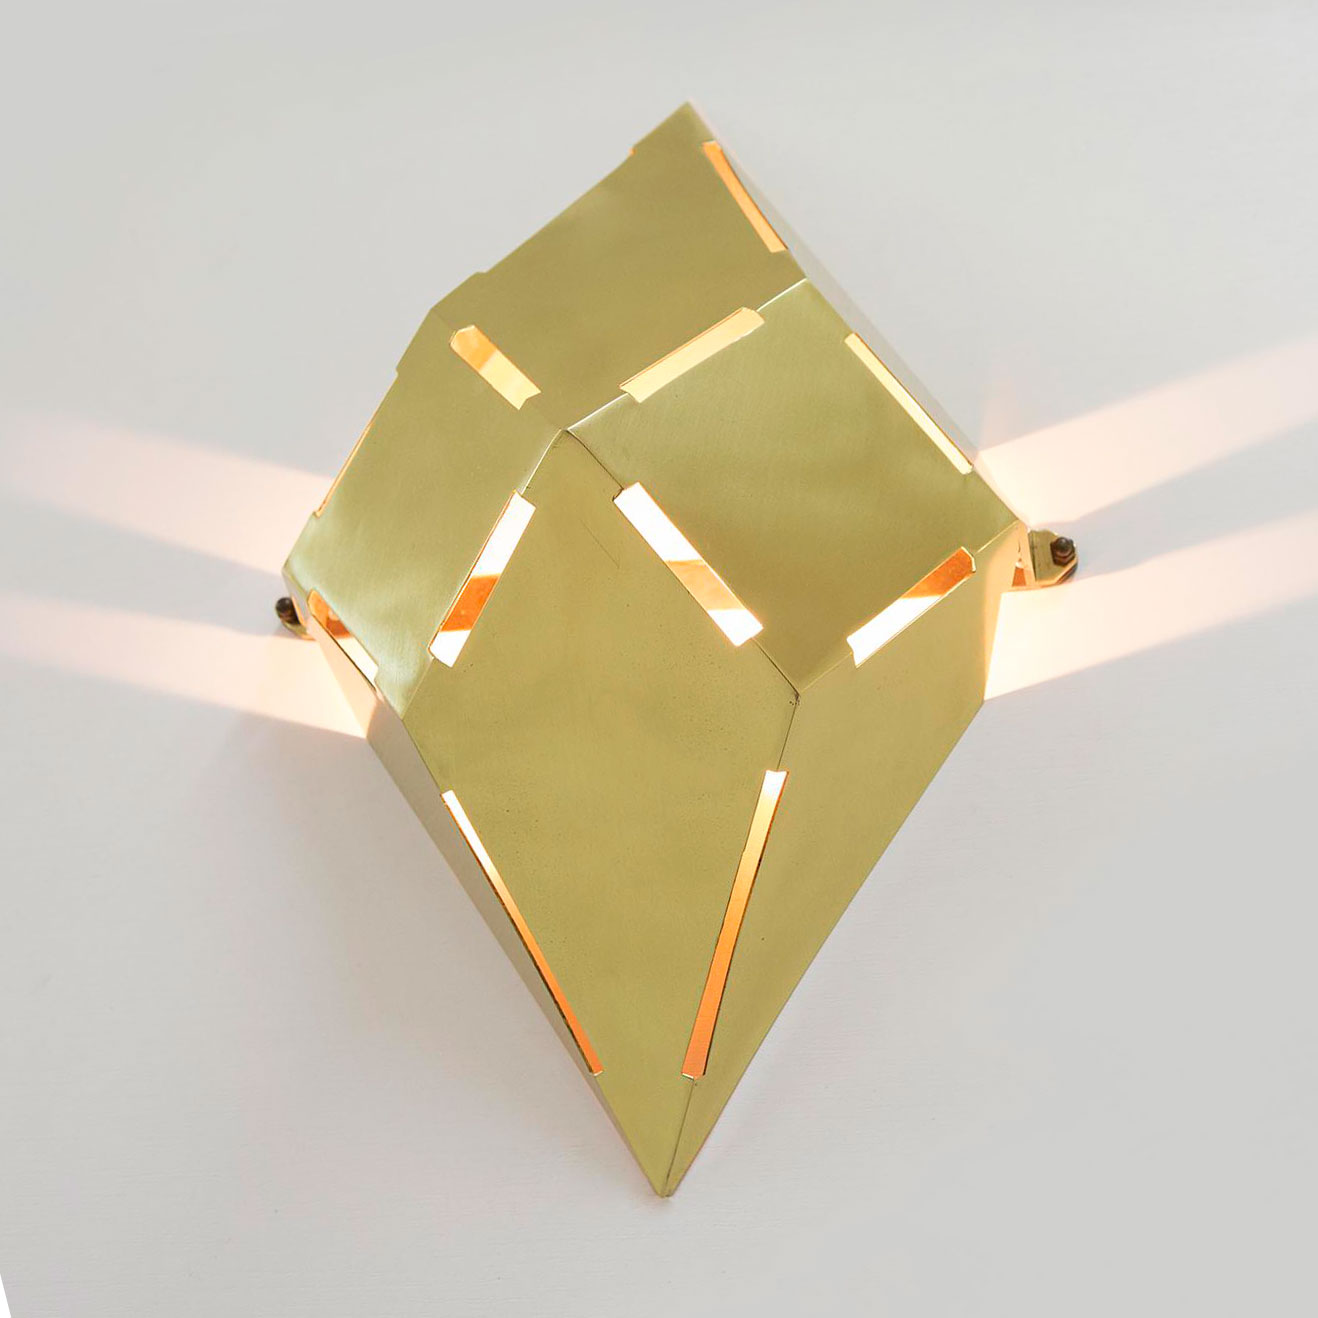 Gabriella Crespi  |                                  Pyramid wall lamps - pair